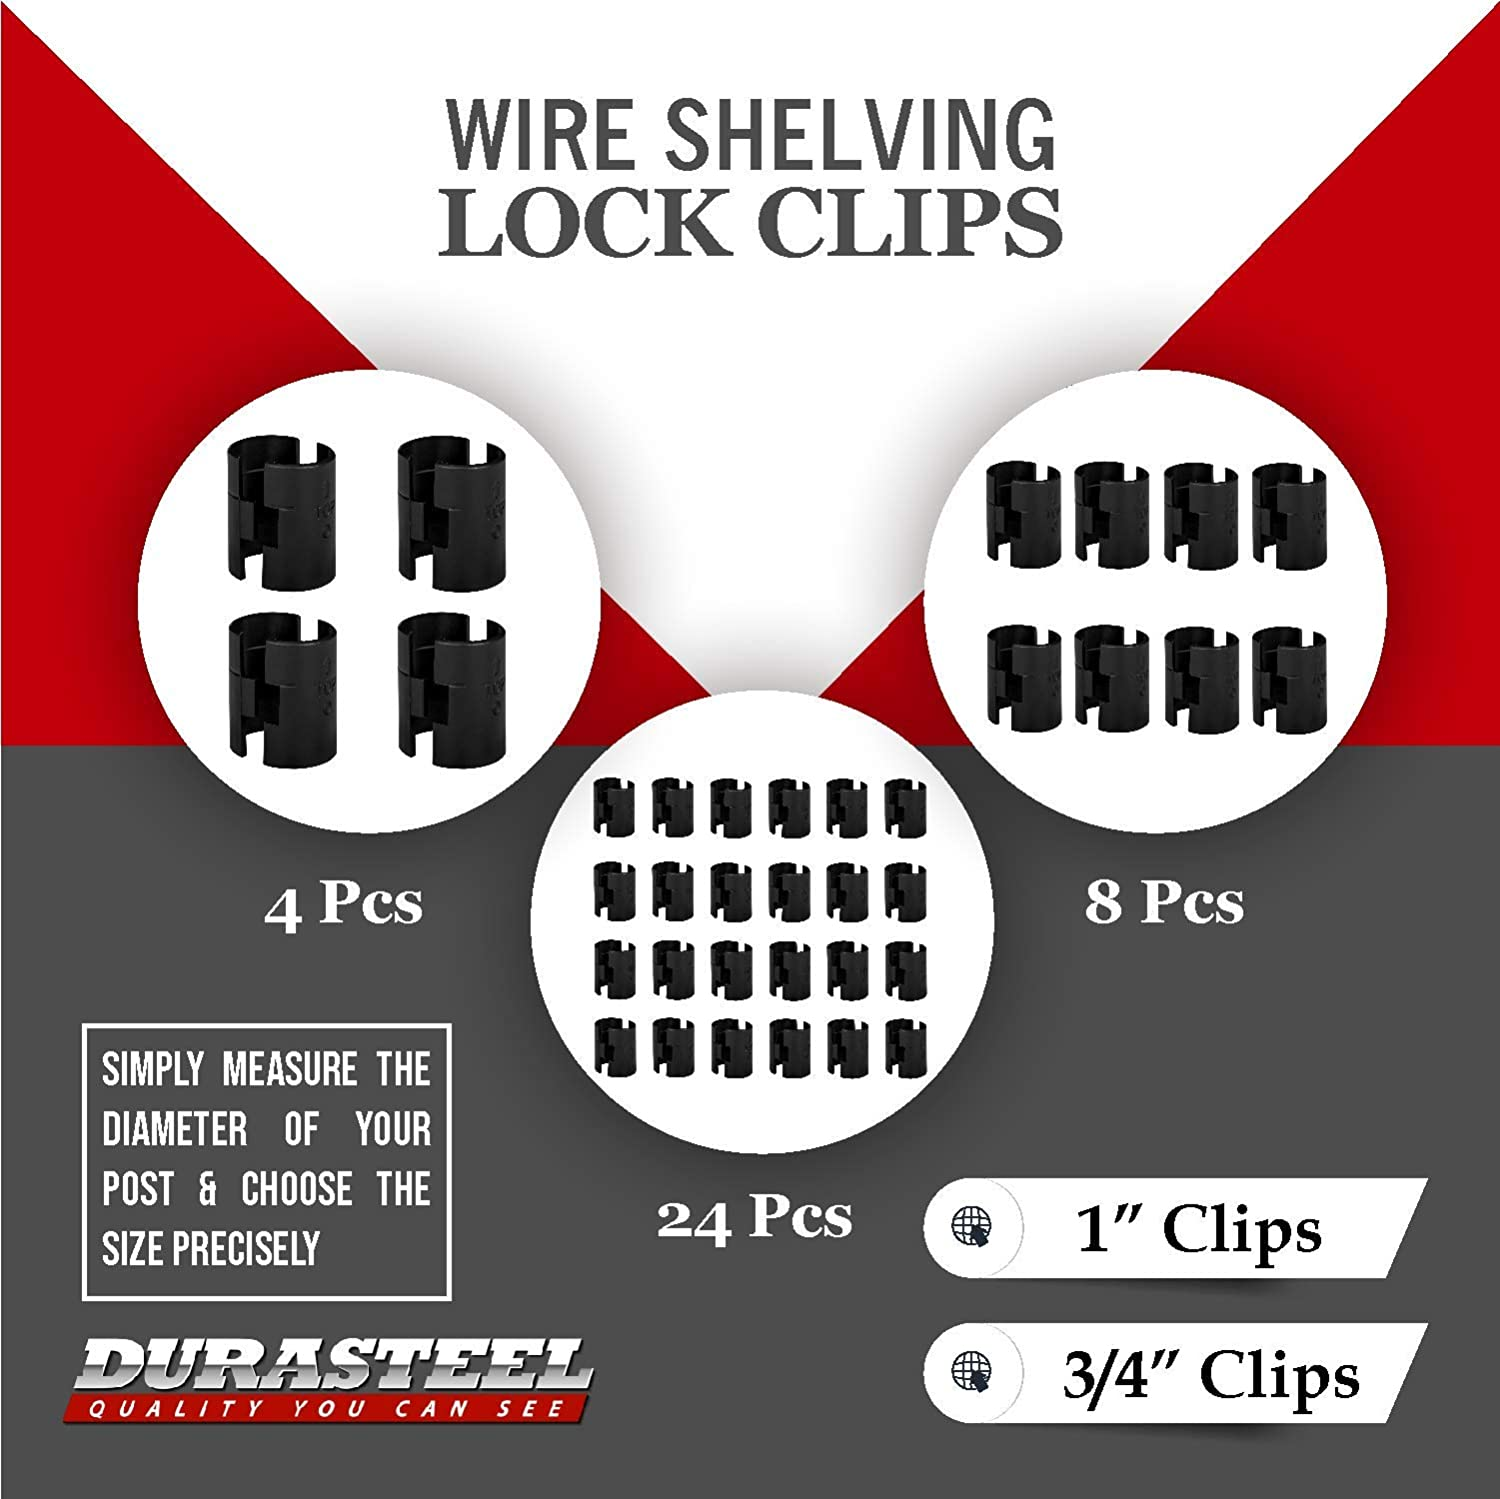 """DuraSteel Wire Shelving Shelf Lock Clips / Shelving Sleeves - Fits with Thunder Group, Alera, Honey Can Do, Eagle, Regency, Metro and more - For 3/4"""" Post, Plastic, Black, Pack of 8 Pcs: Home Improvement"""